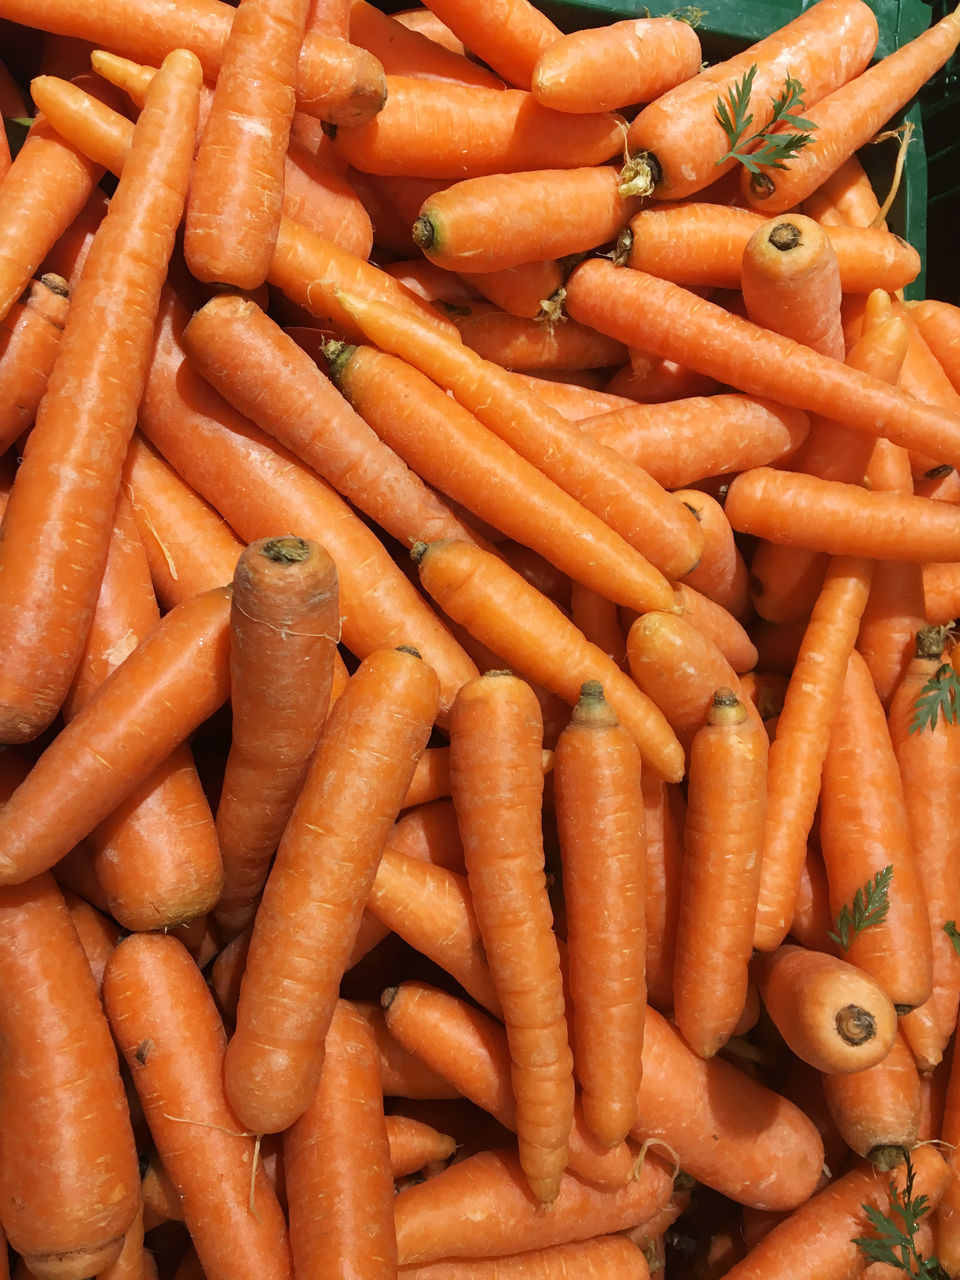 carrot, vegetable, food and drink, orange color, freshness, healthy eating, food, abundance, root vegetable, large group of objects, raw food, market, no people, outdoors, day, close-up